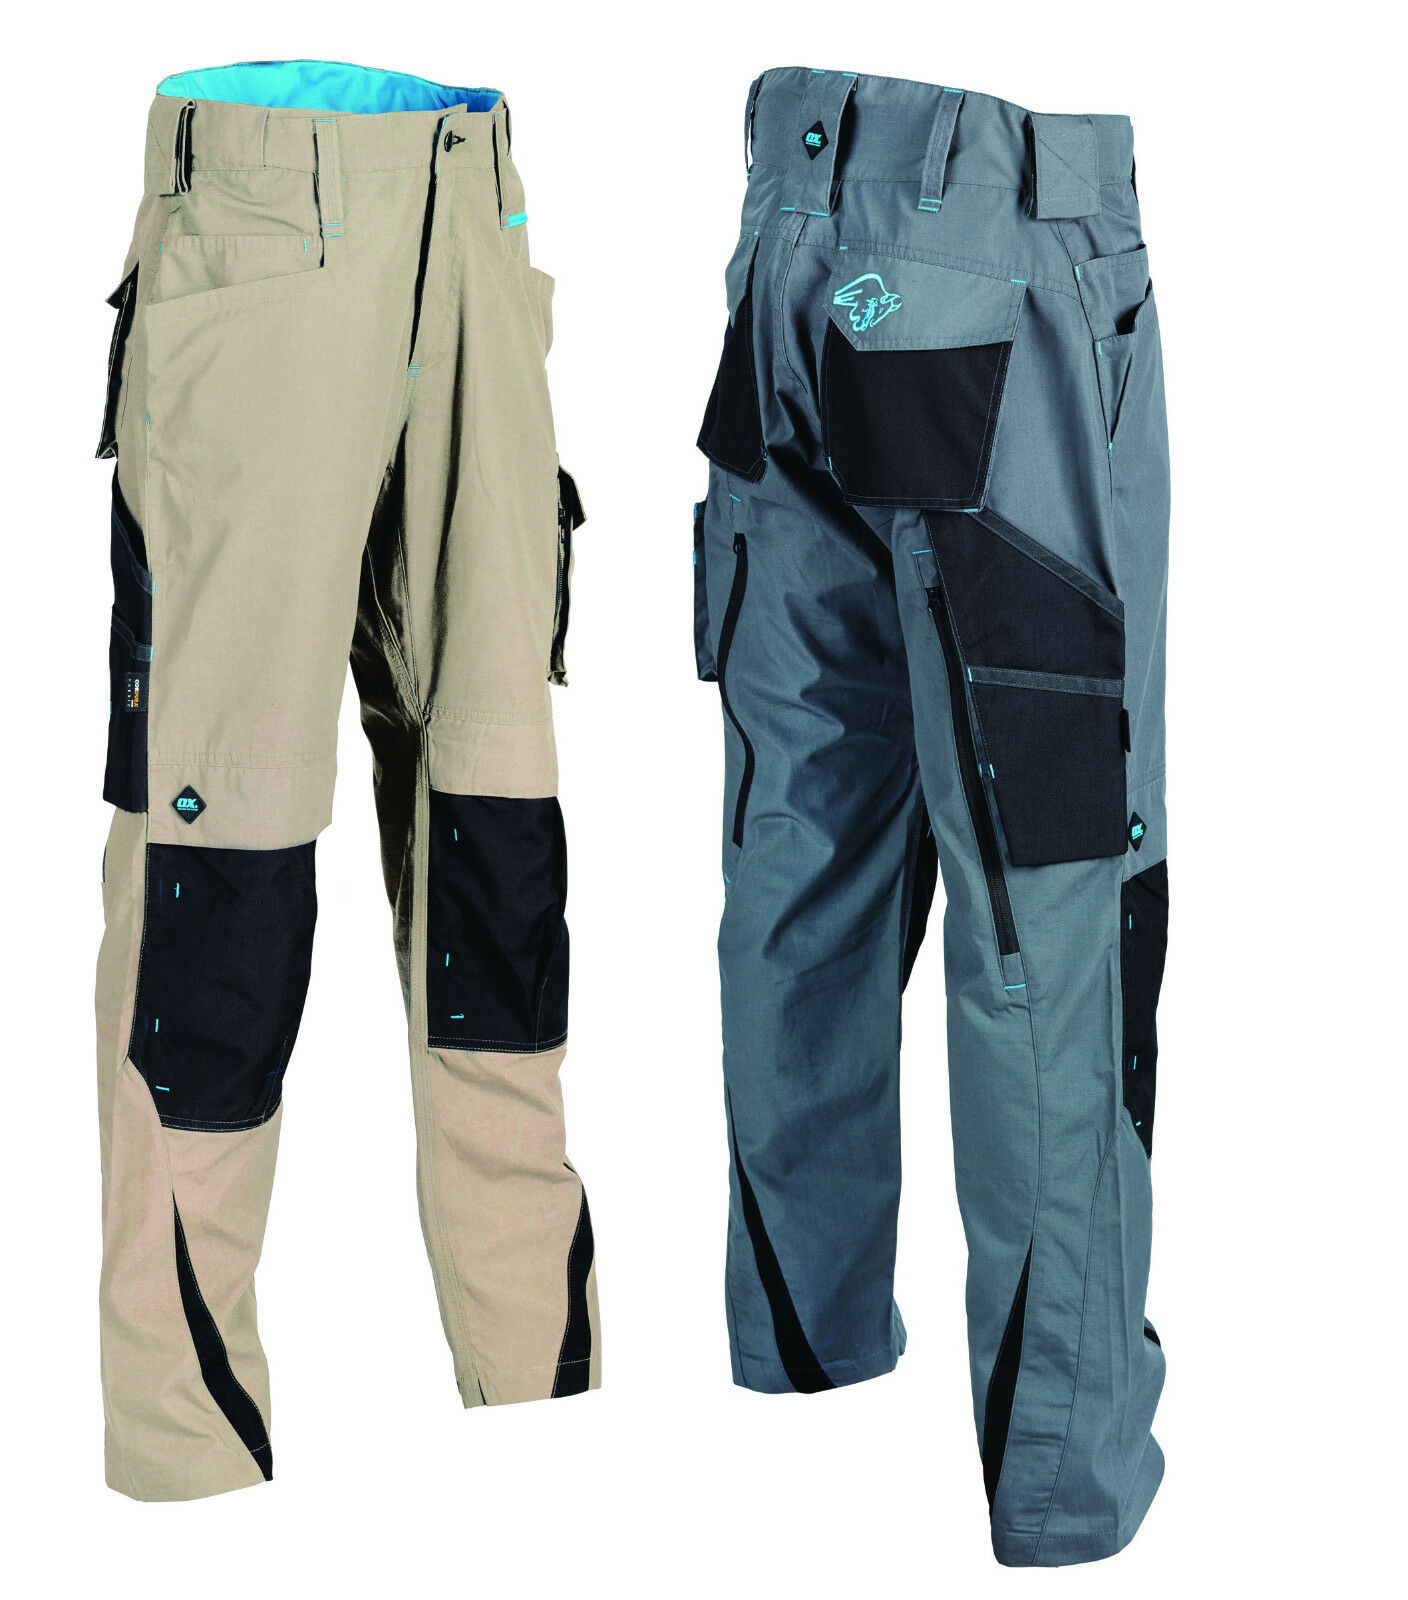 Ox Tools Work Trousers Lightweight Ripstop Durable Reinforced Anti Rip Workwear